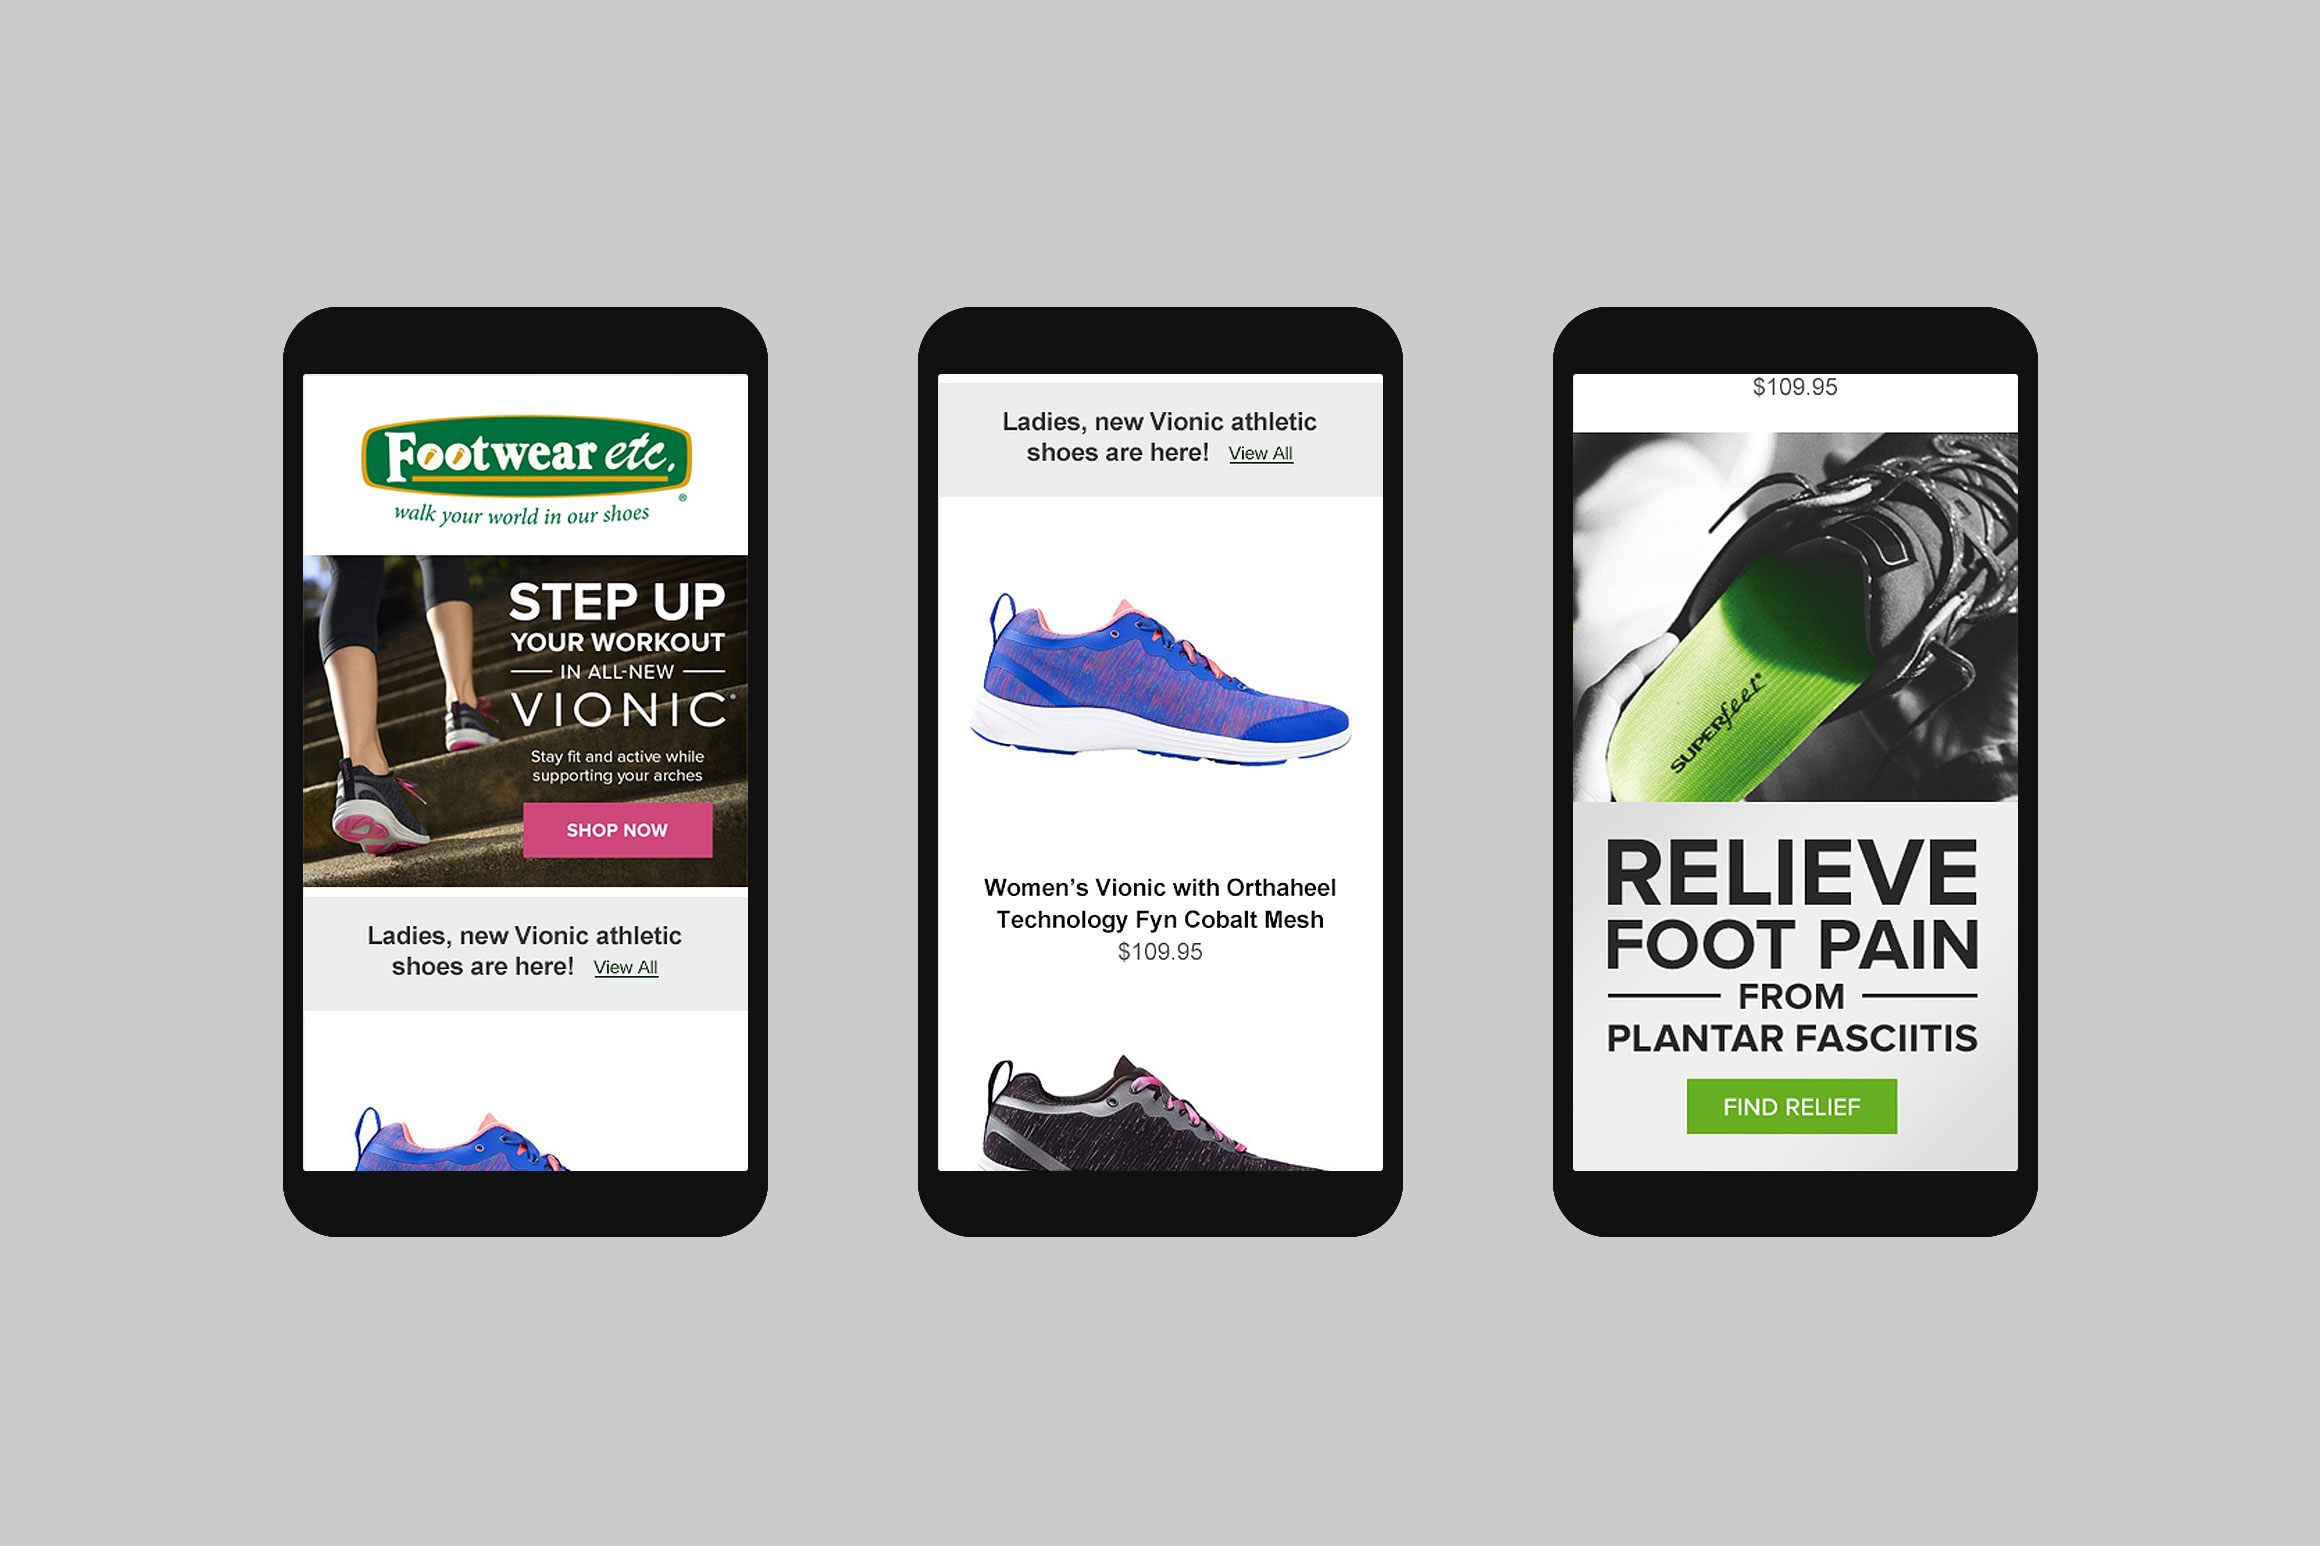 Footwear etc. Mobile Email Template #3